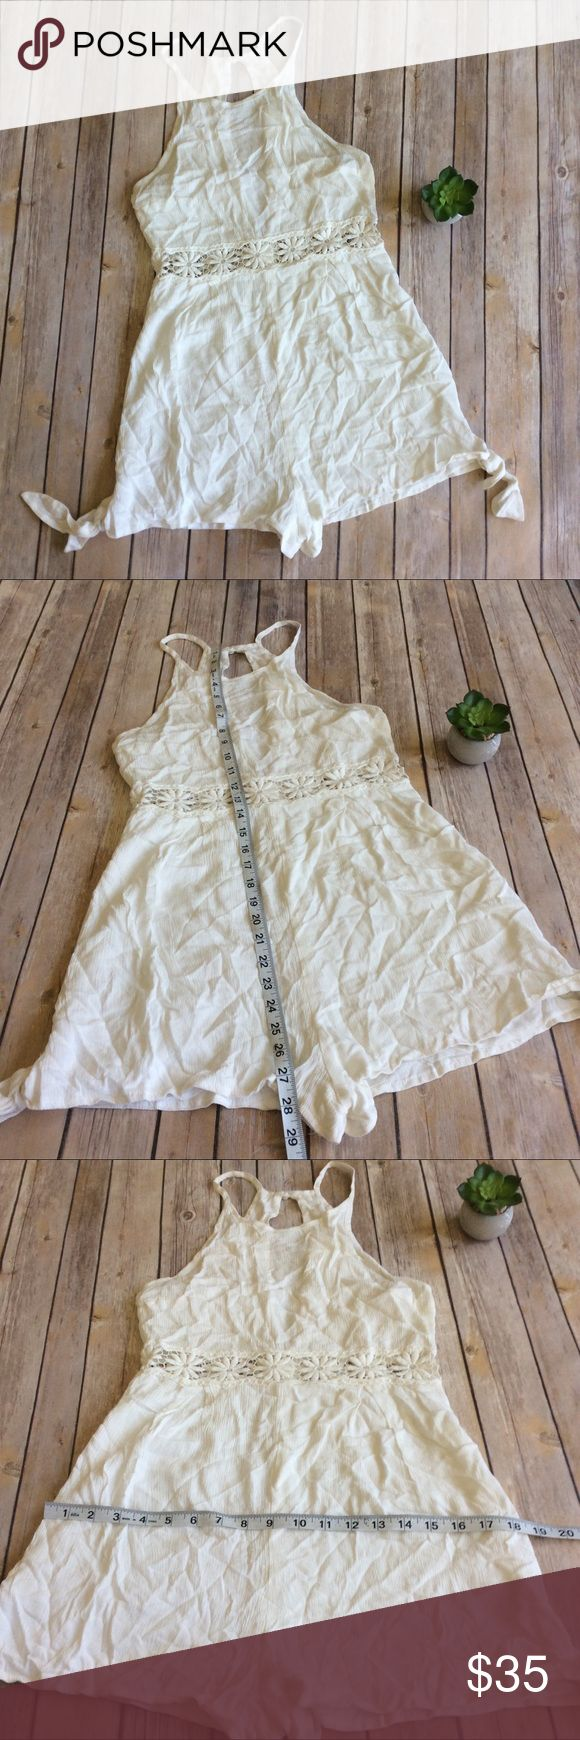 LF Dream State Romper size Medium Like new ivory with crochet detail and deep v back. So cute for Festival and concert season!  ❌no trades, holds, or lowball offers. ✅Clean and smoke free home, quick shipping, bundle discount, always! 🎁Free gift with $15+ bundle. LF Pants Jumpsuits & Rompers